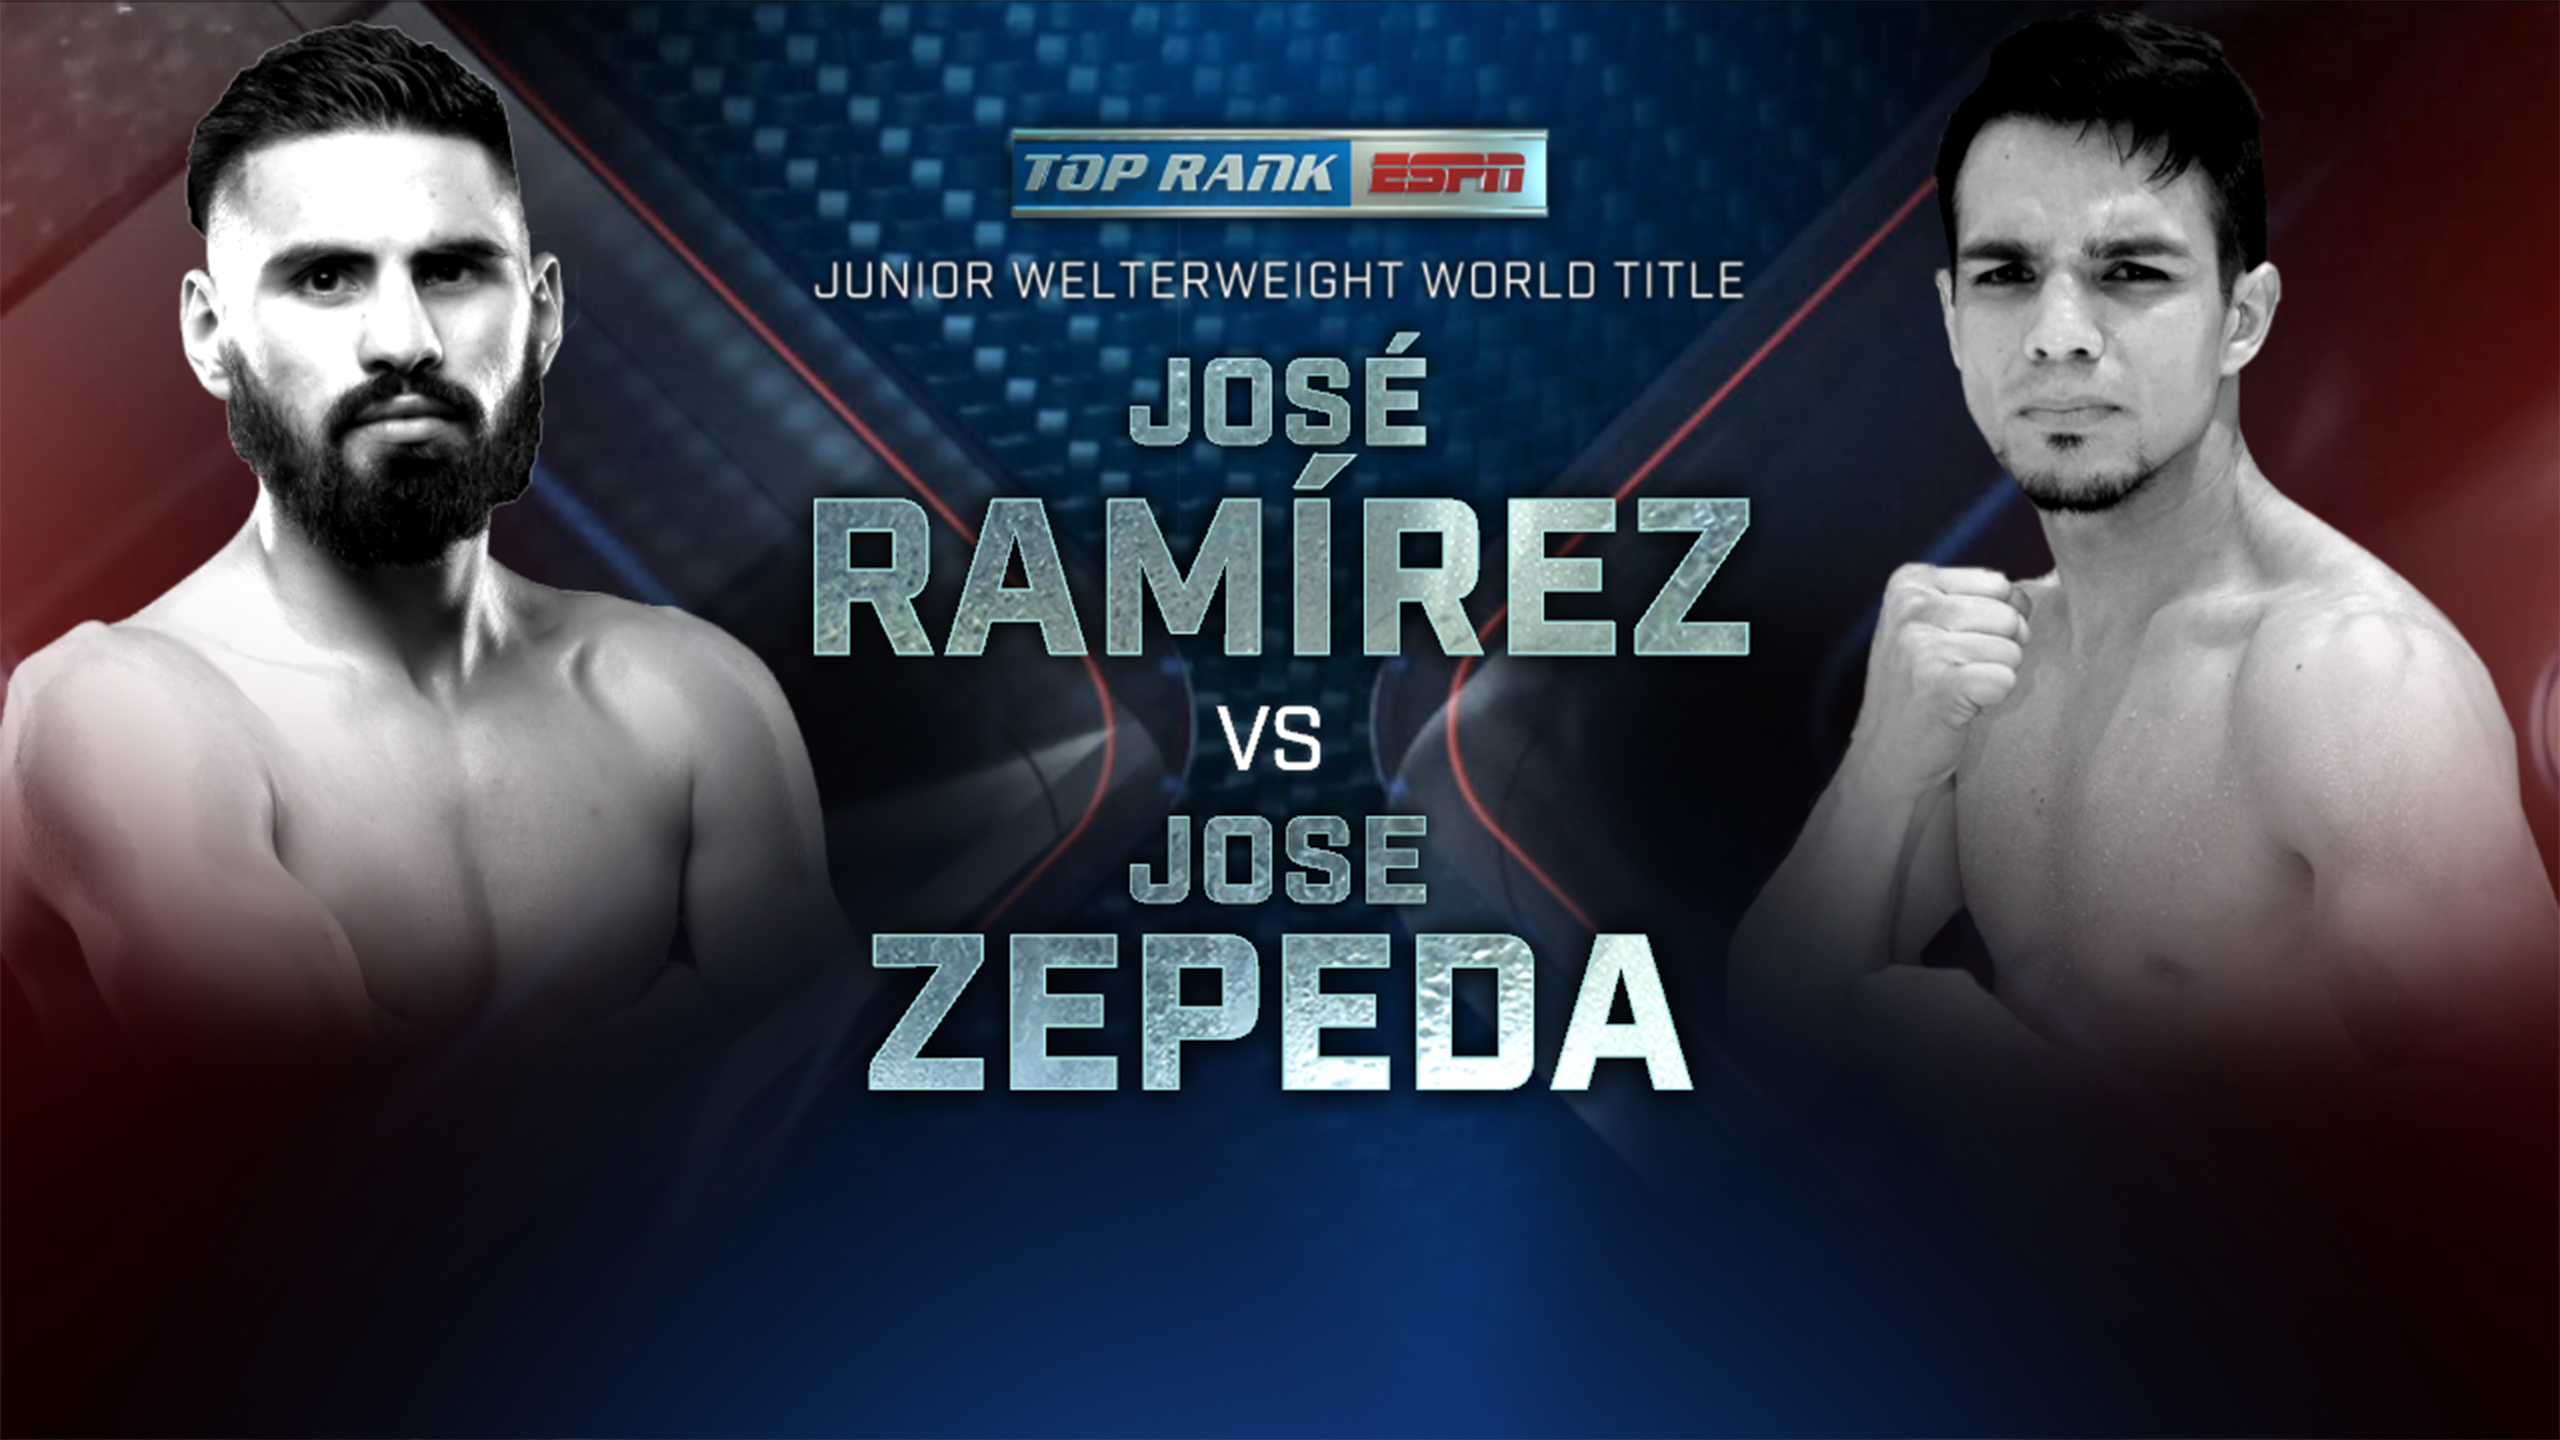 Jose Ramirez vs. Jose Zepeda (re-air)